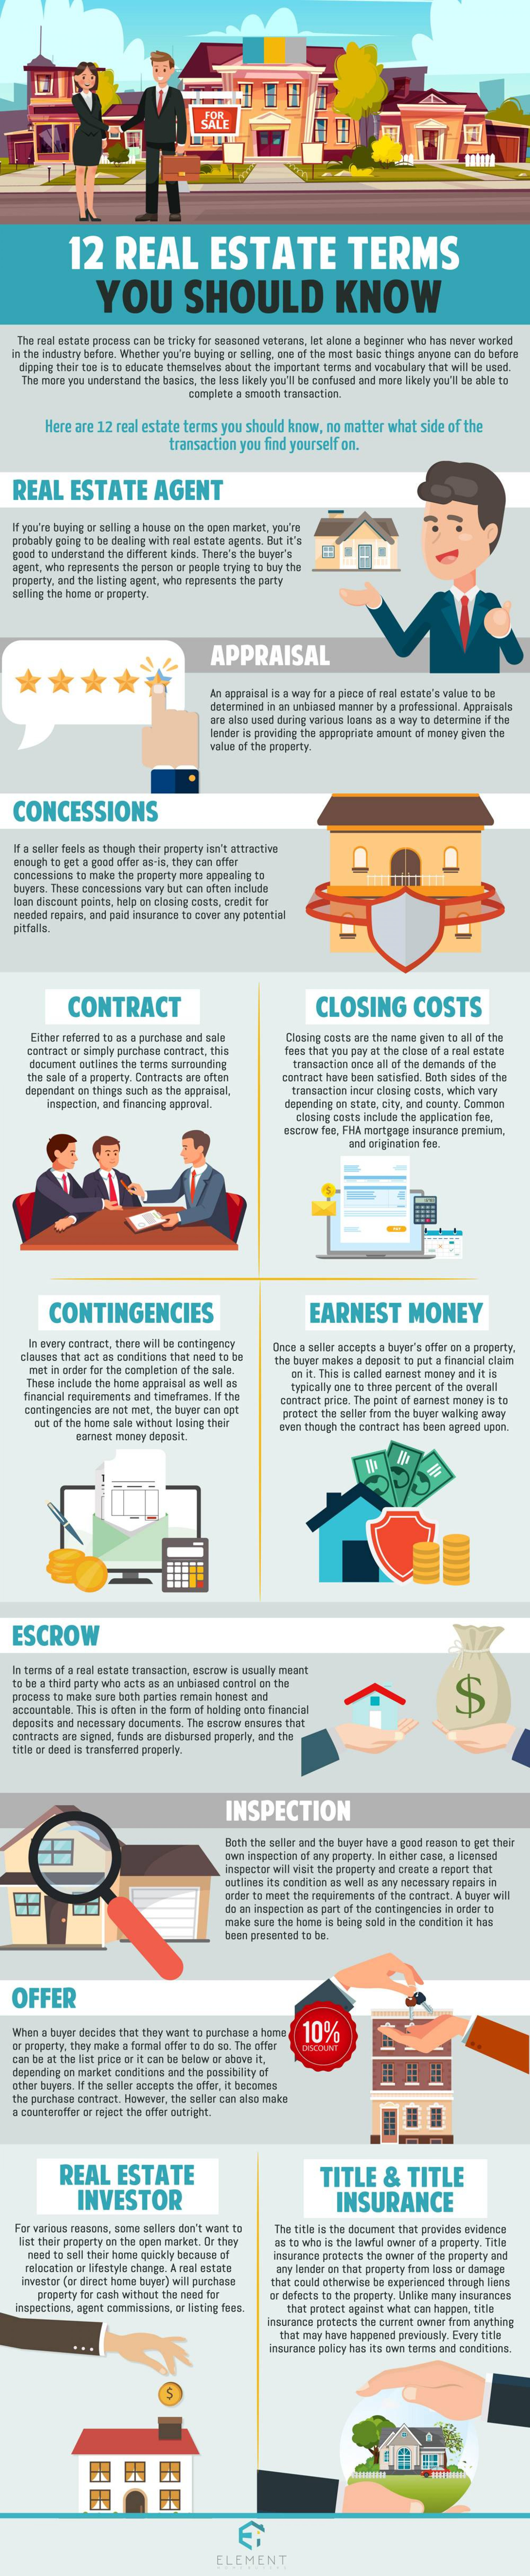 12 Real Estate Terms You Should Know Infographic